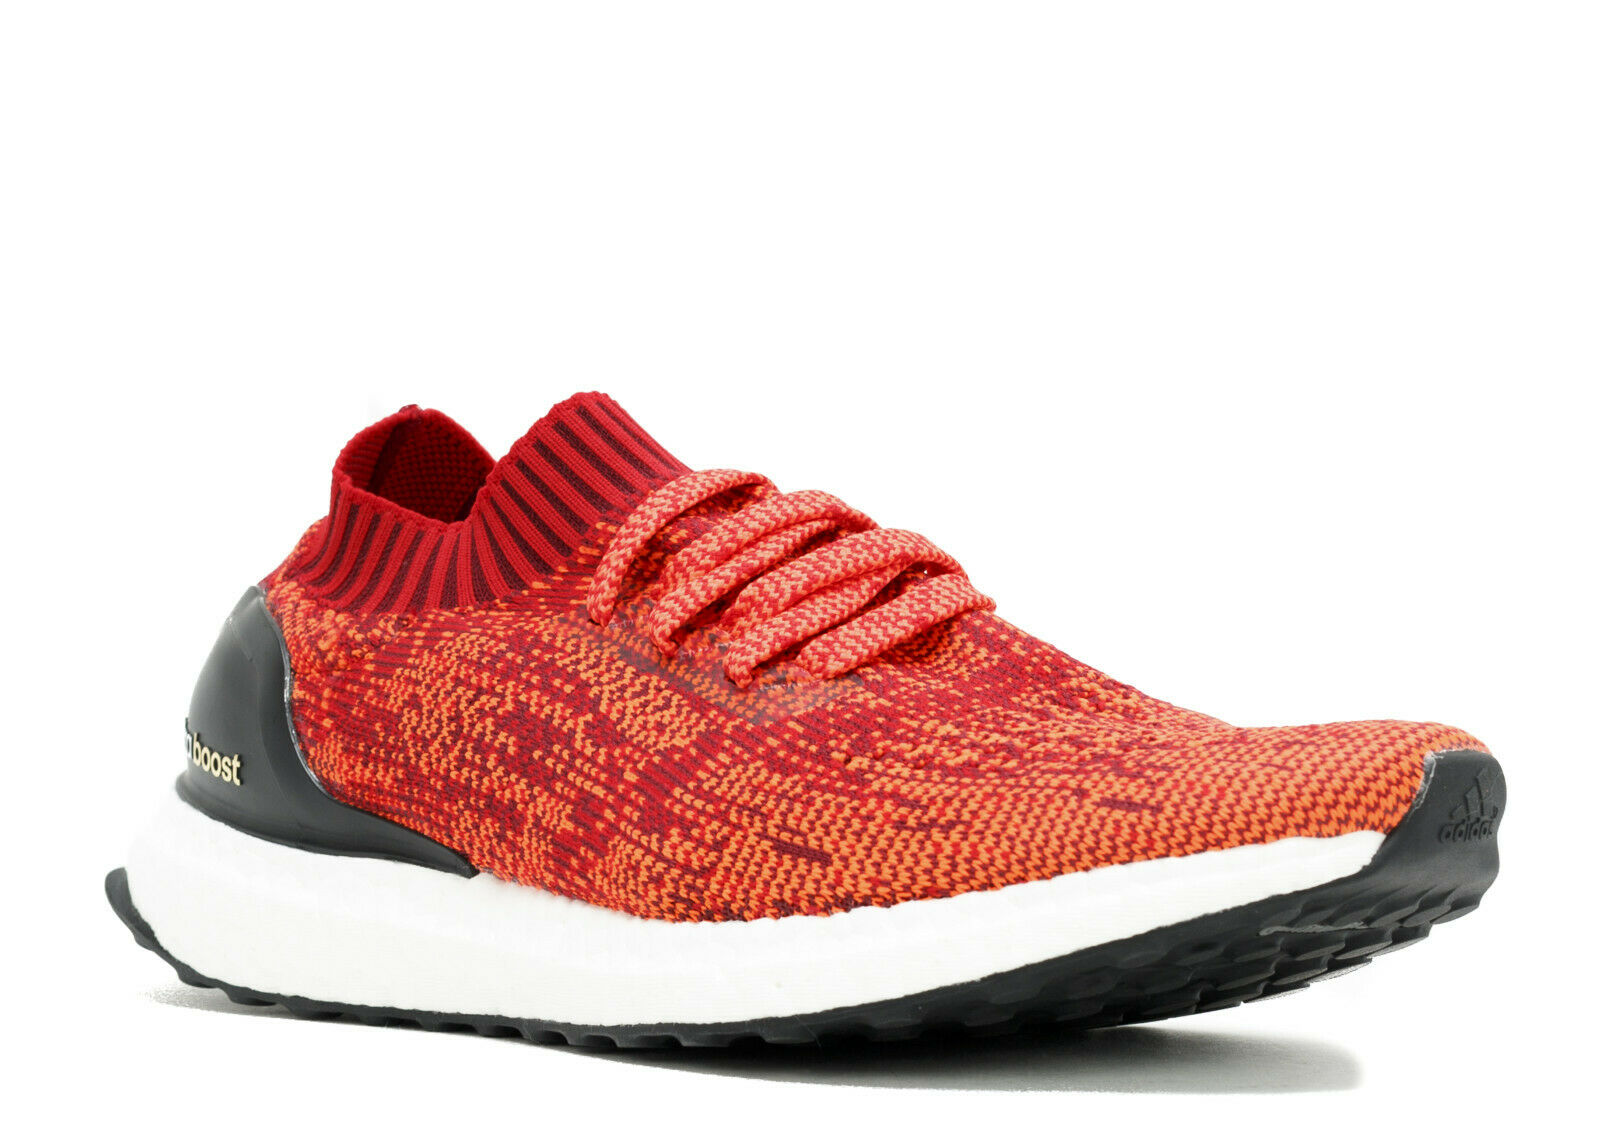 50003c9e4ad6c ULTRA BOOST UNCAGED M - BB3899 npgrfr1054-Athletic Shoes - kleidung ...